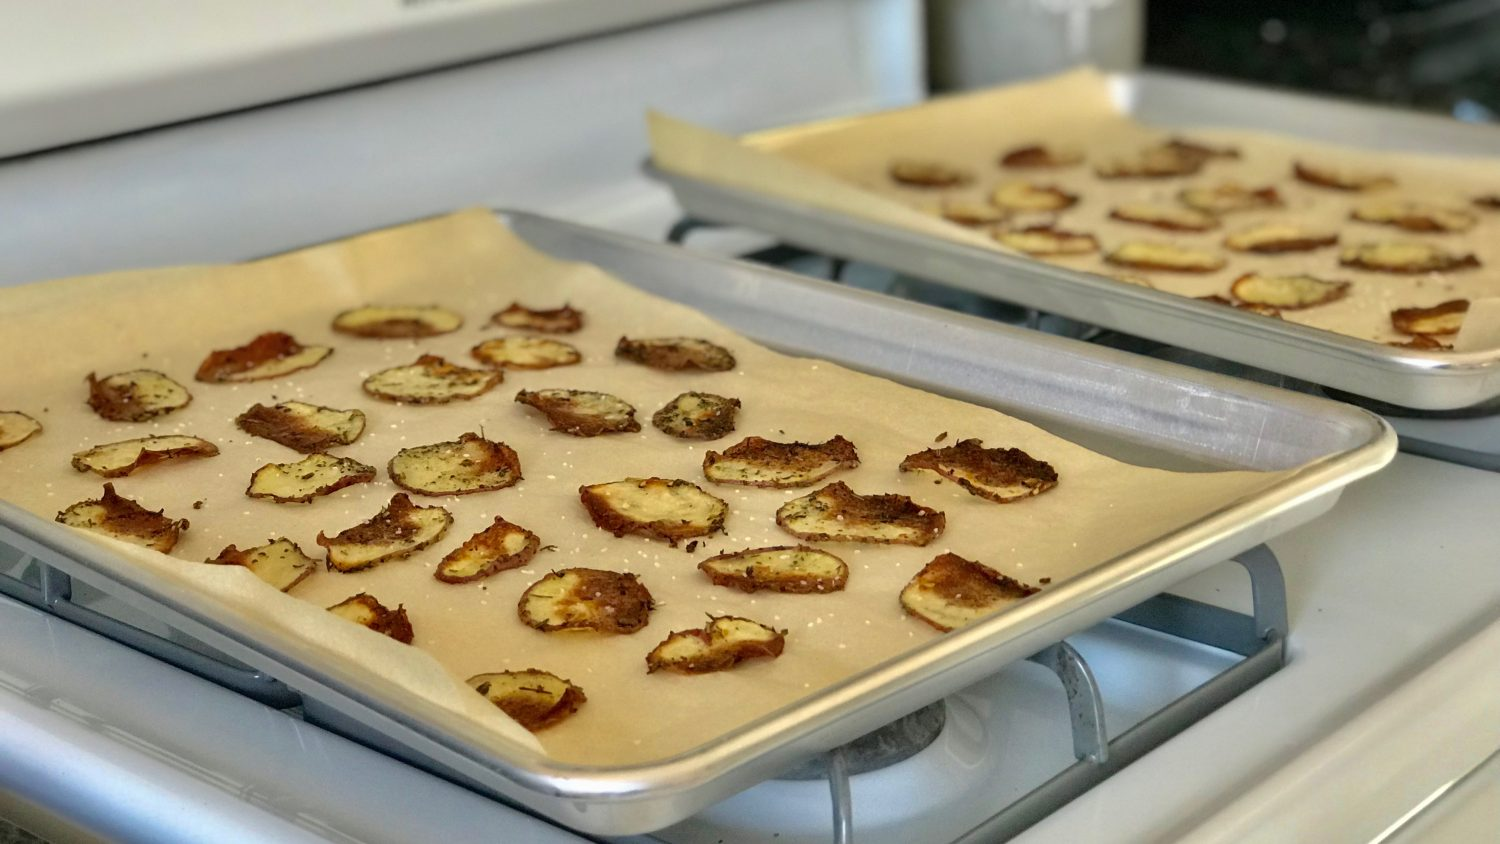 Baked potato chips right out of the oven